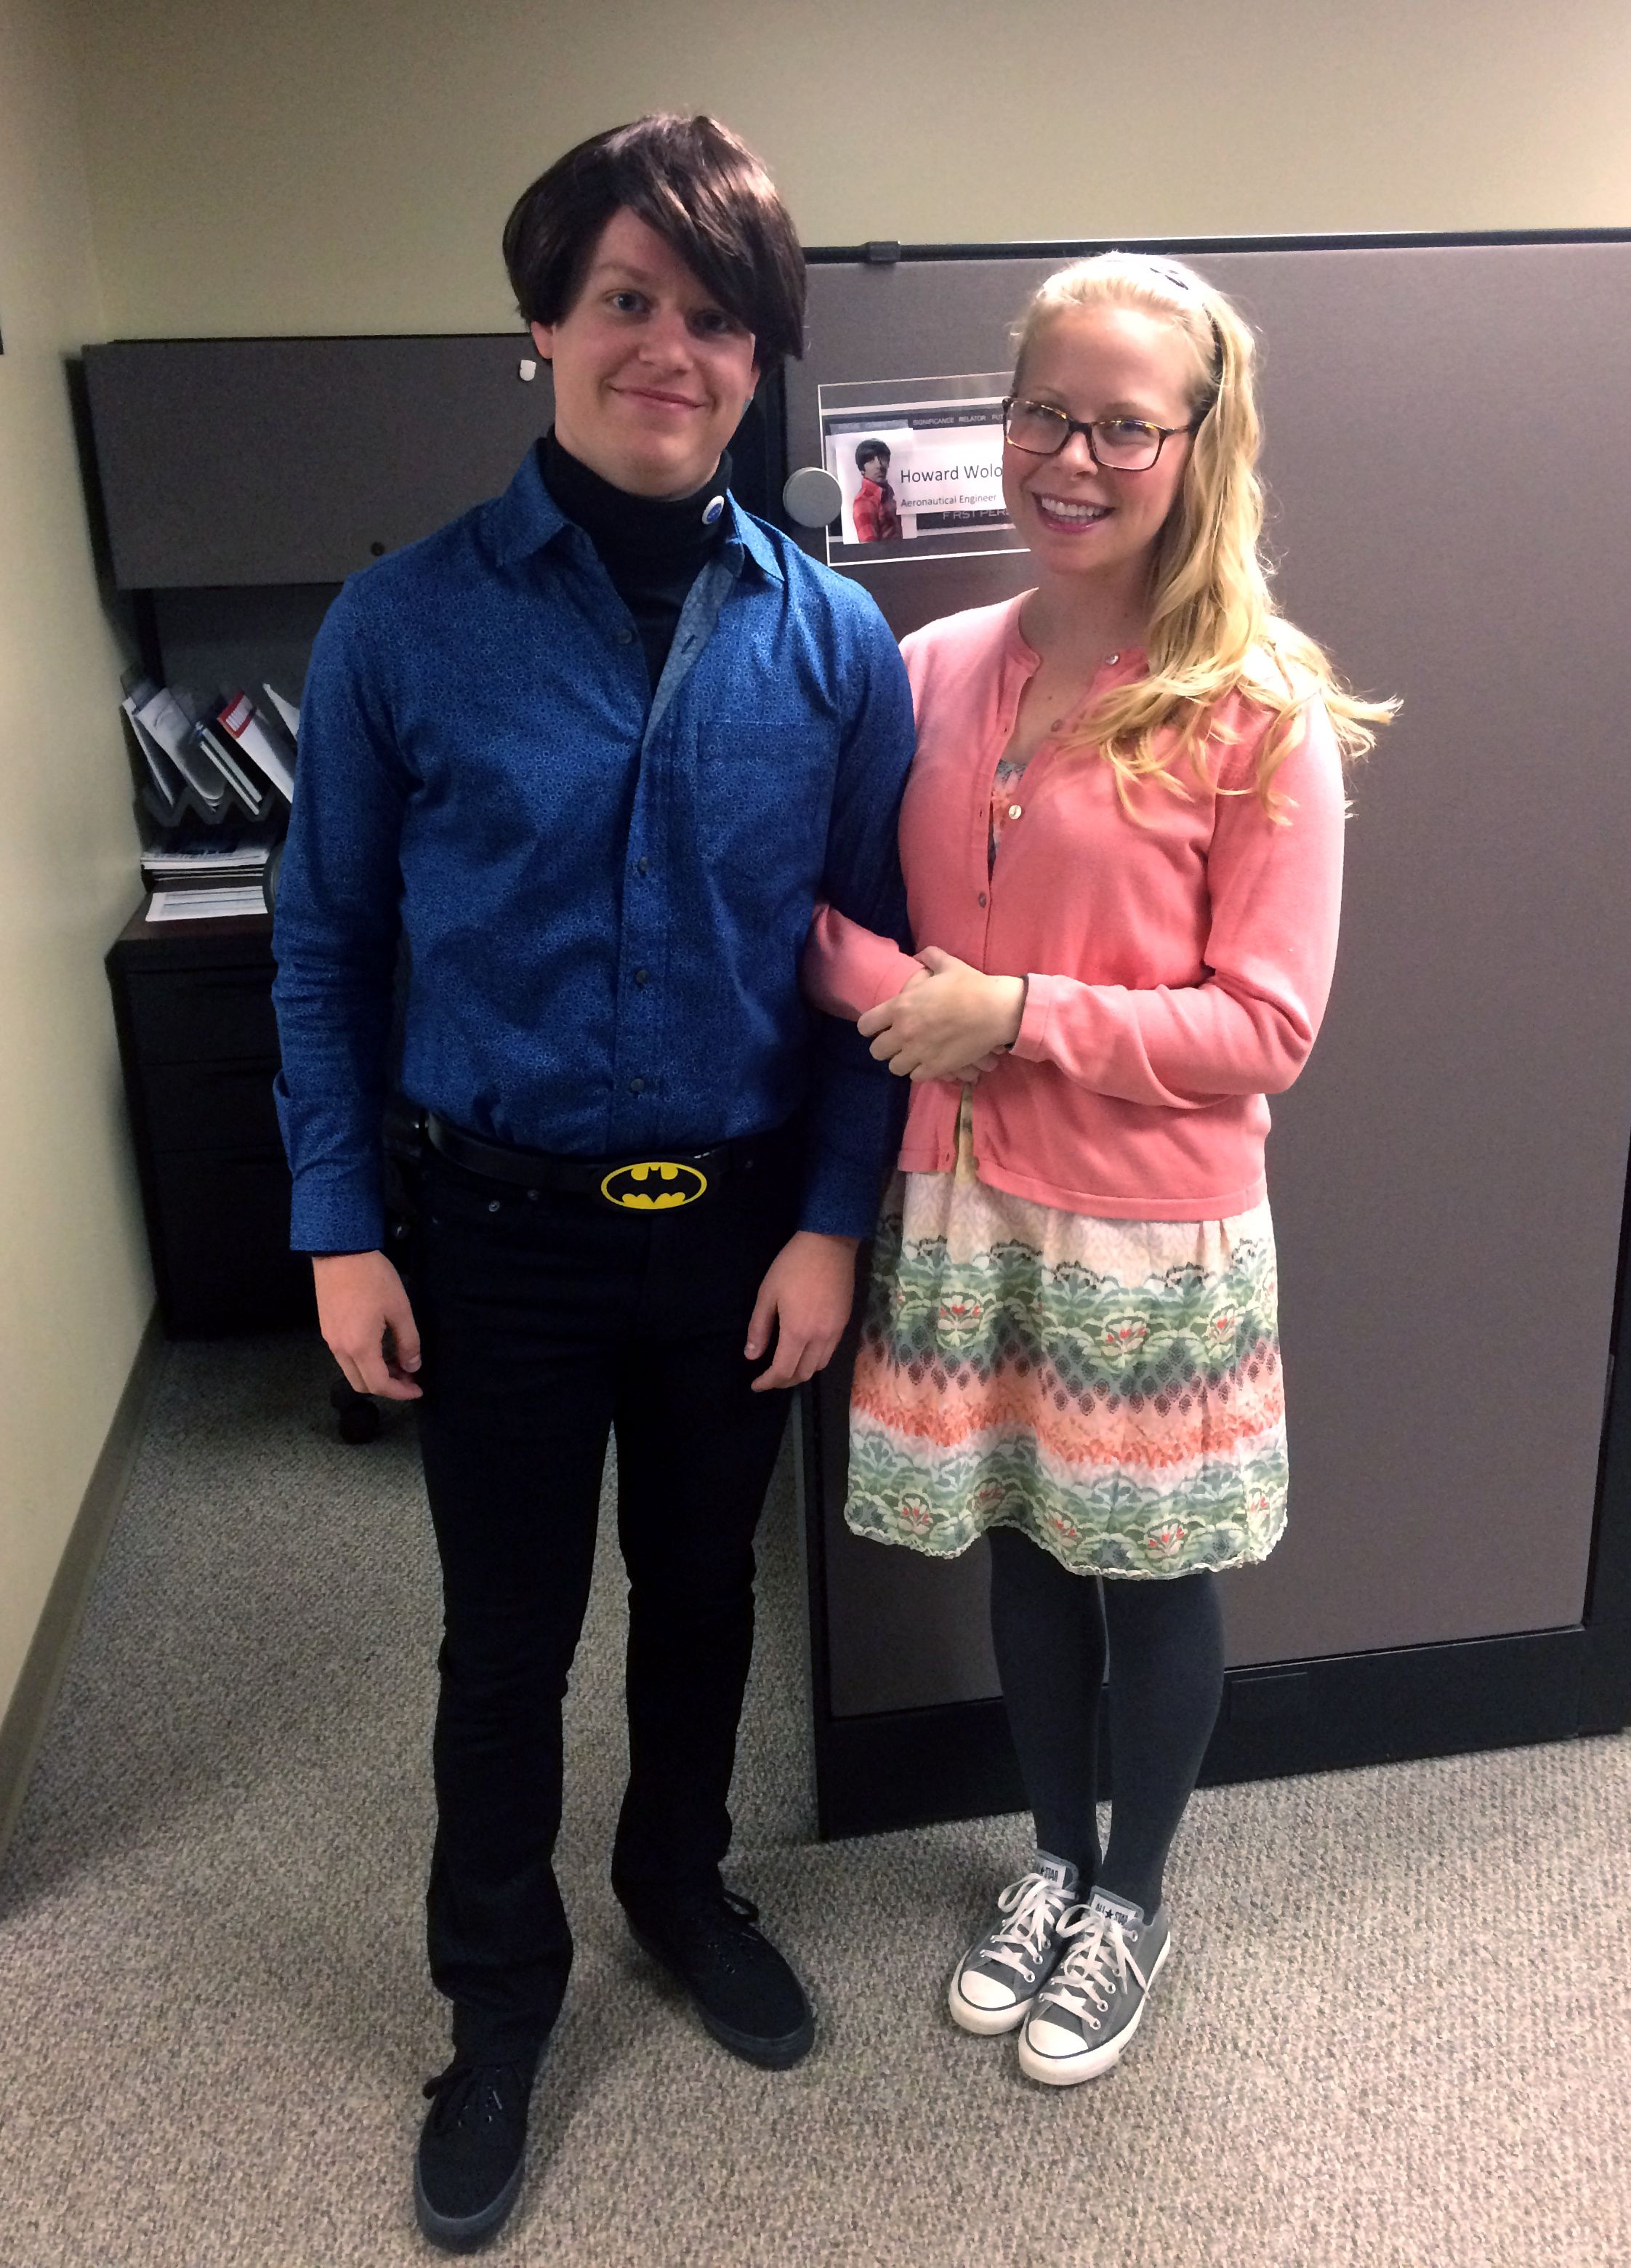 Office halloween costumes - Creative Halloween Costume For The Office Howard And Bernadette From The Big Bang Theory